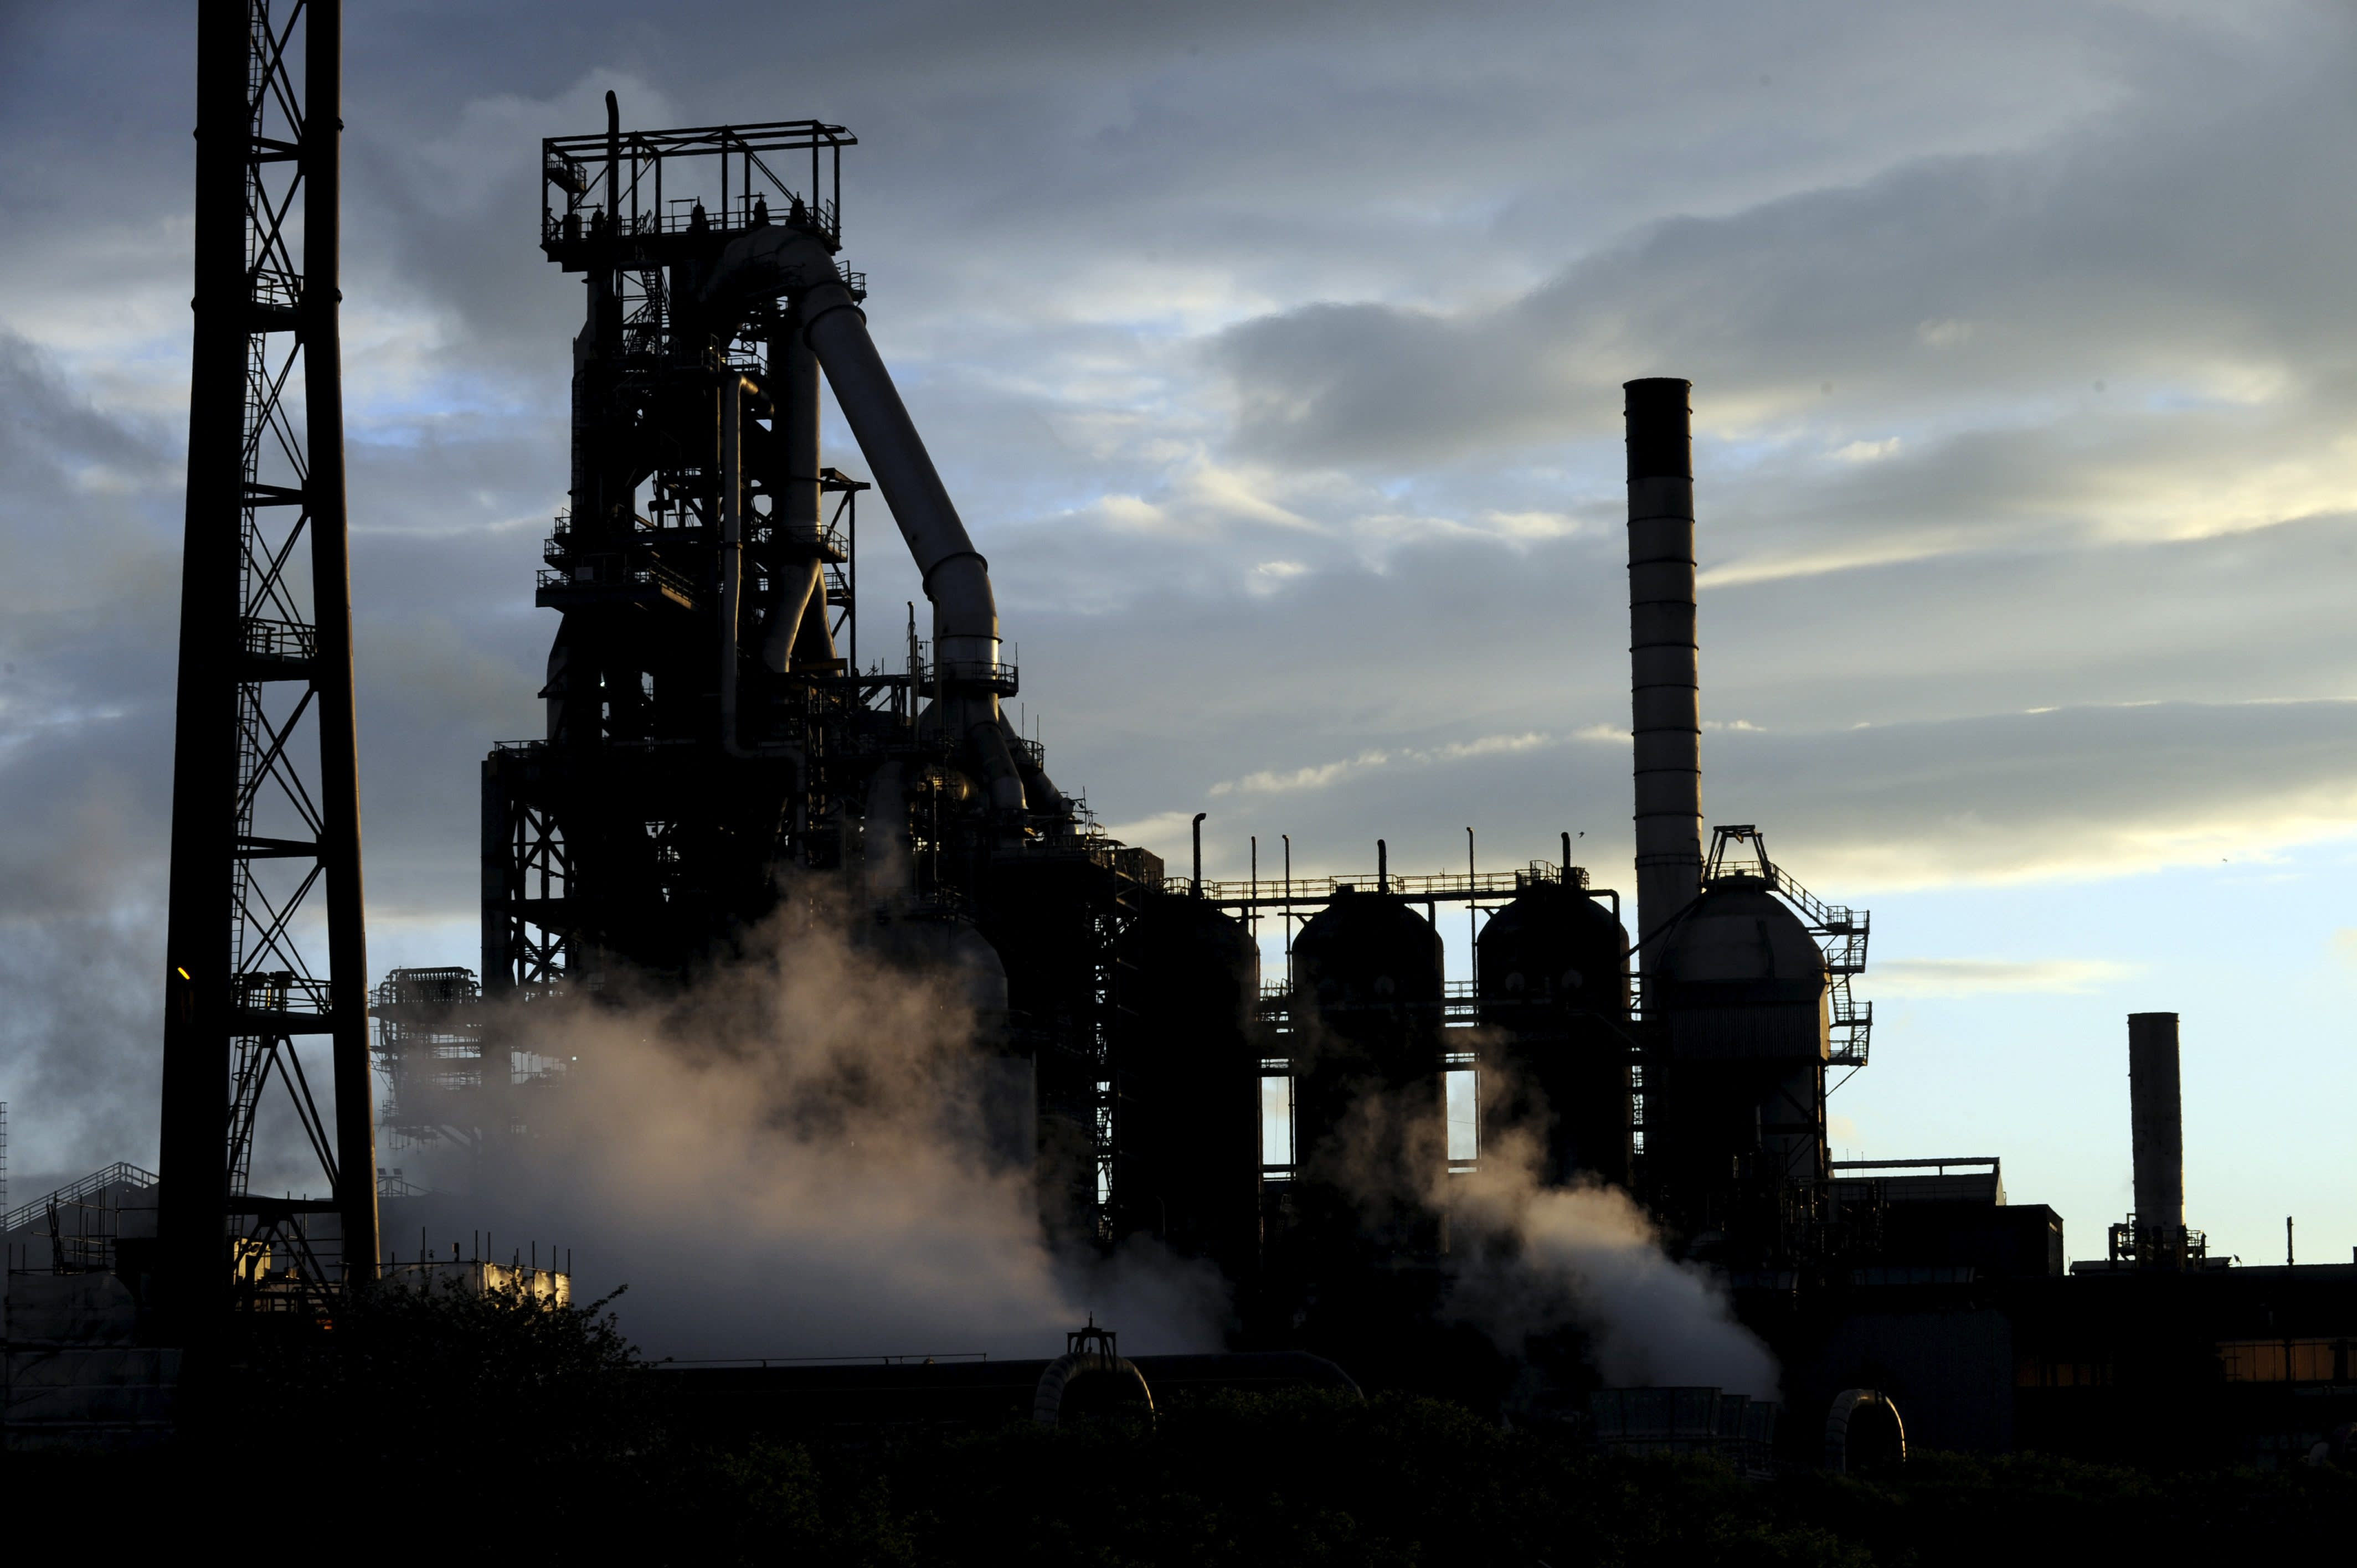 British Steel adviser has £81k to pay nine claims